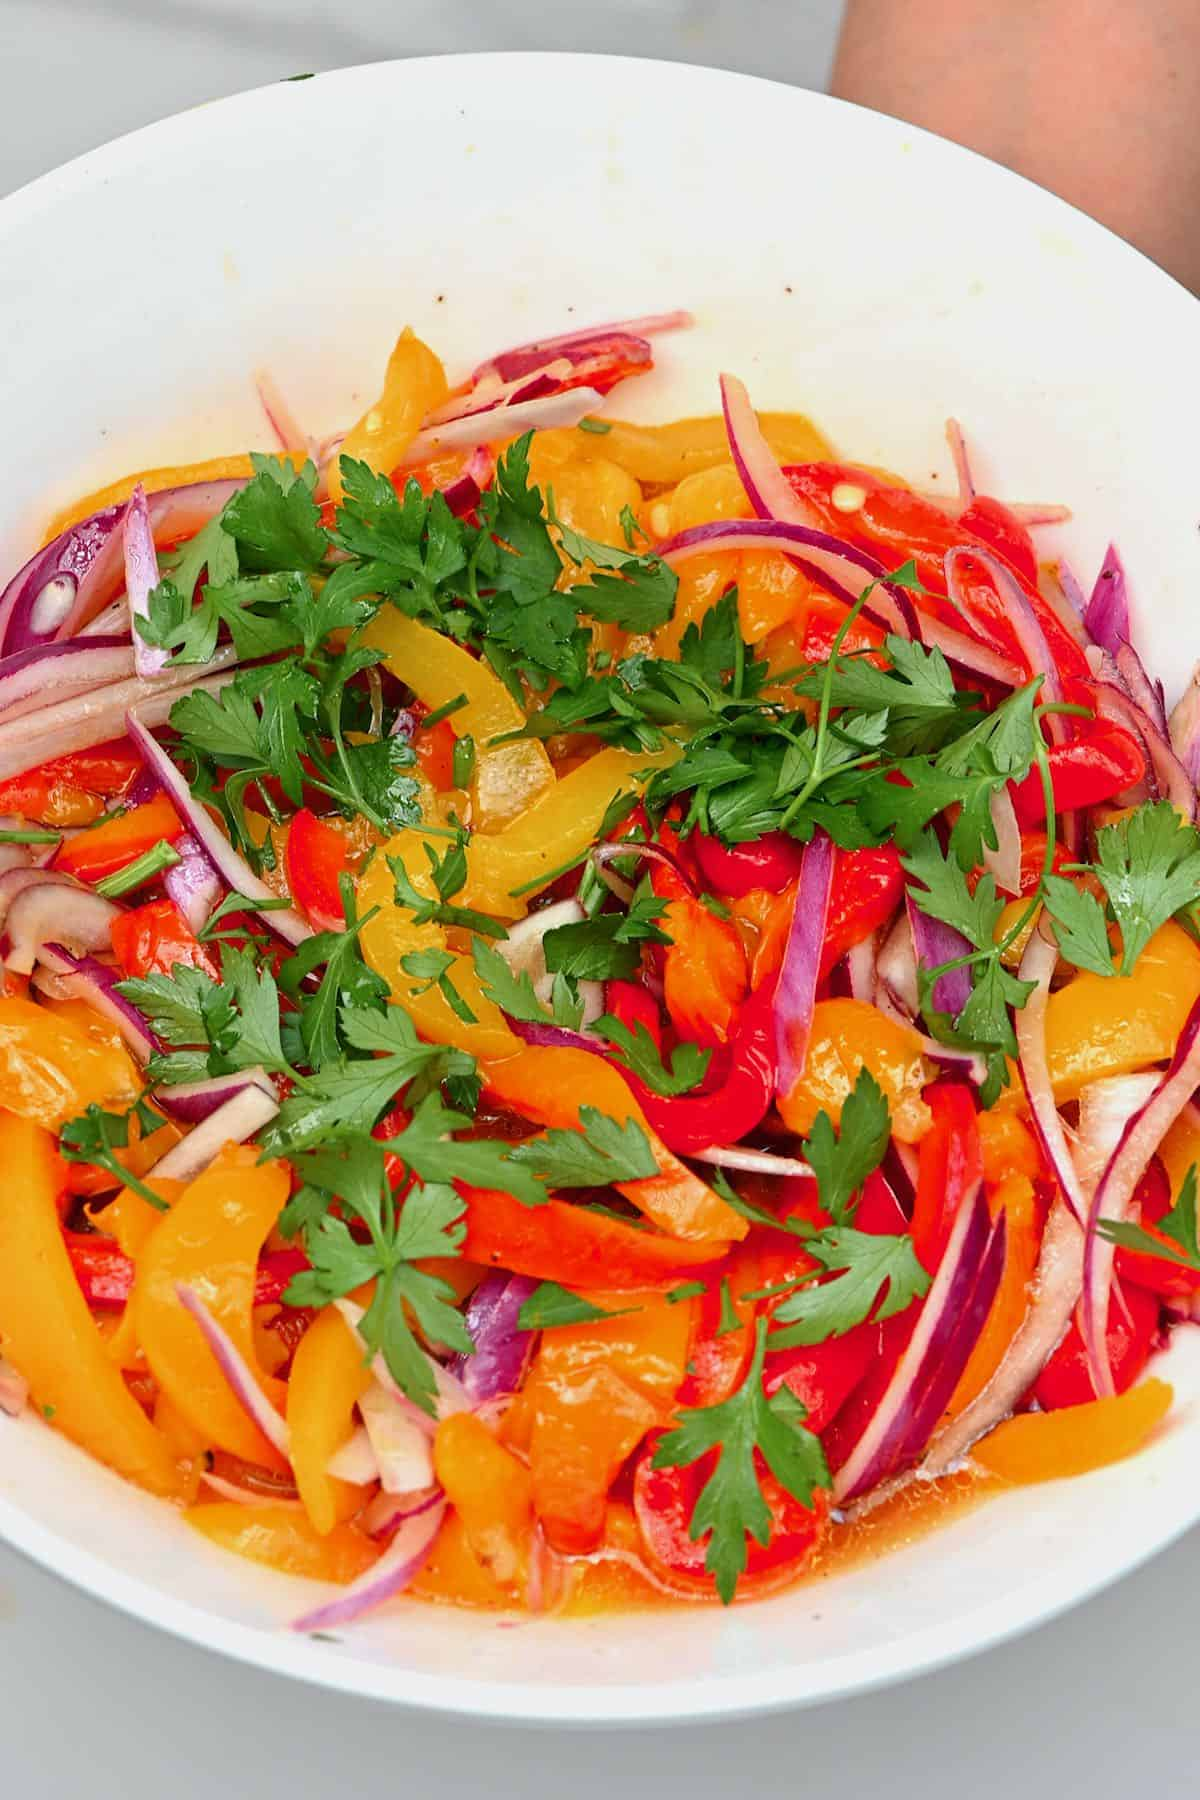 Roasted pepper salad topped with parsley in a bowl